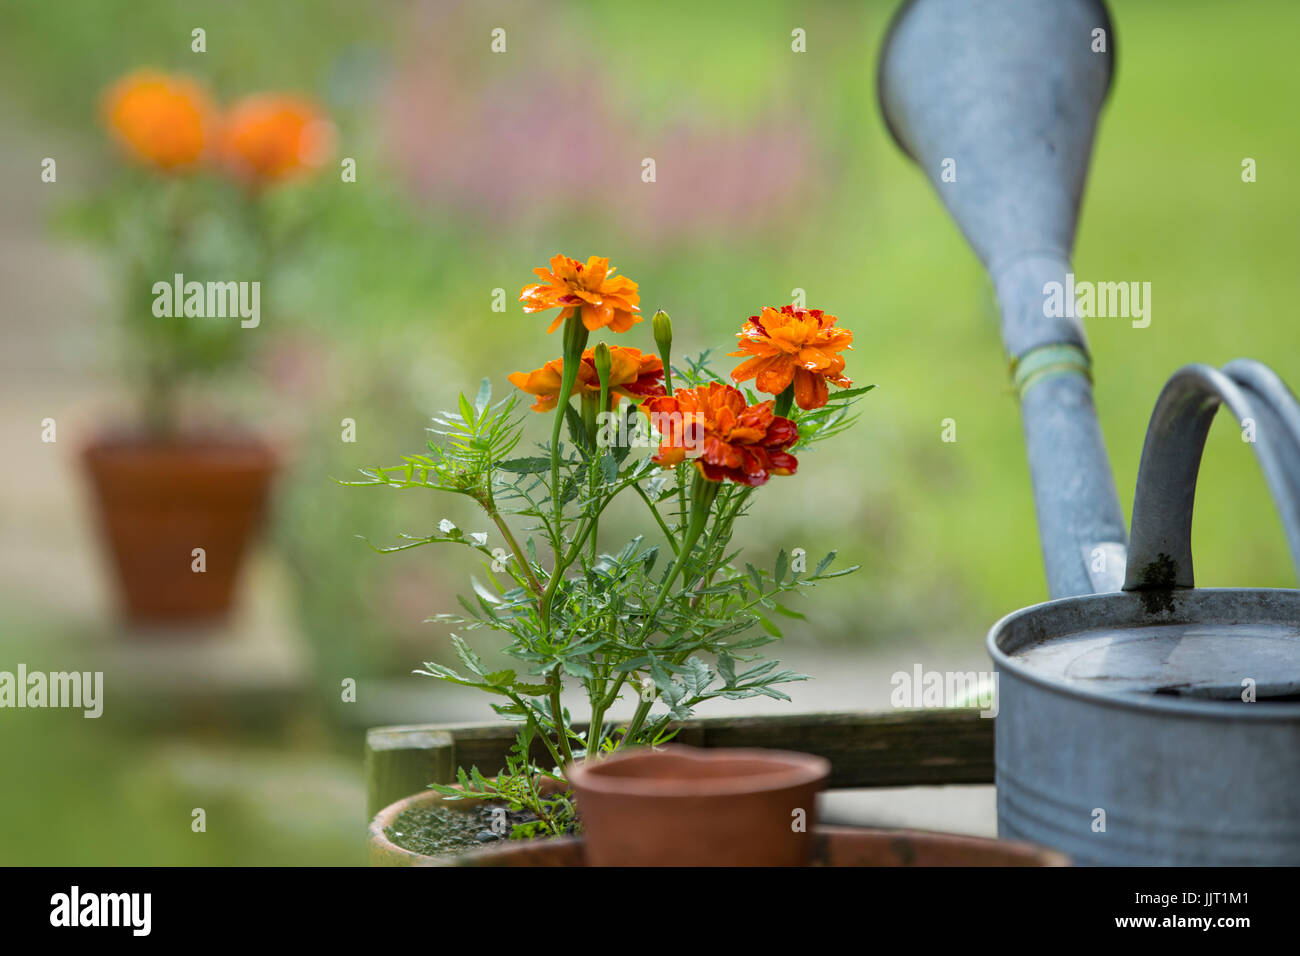 Tagetes in clay pots. - Stock Image